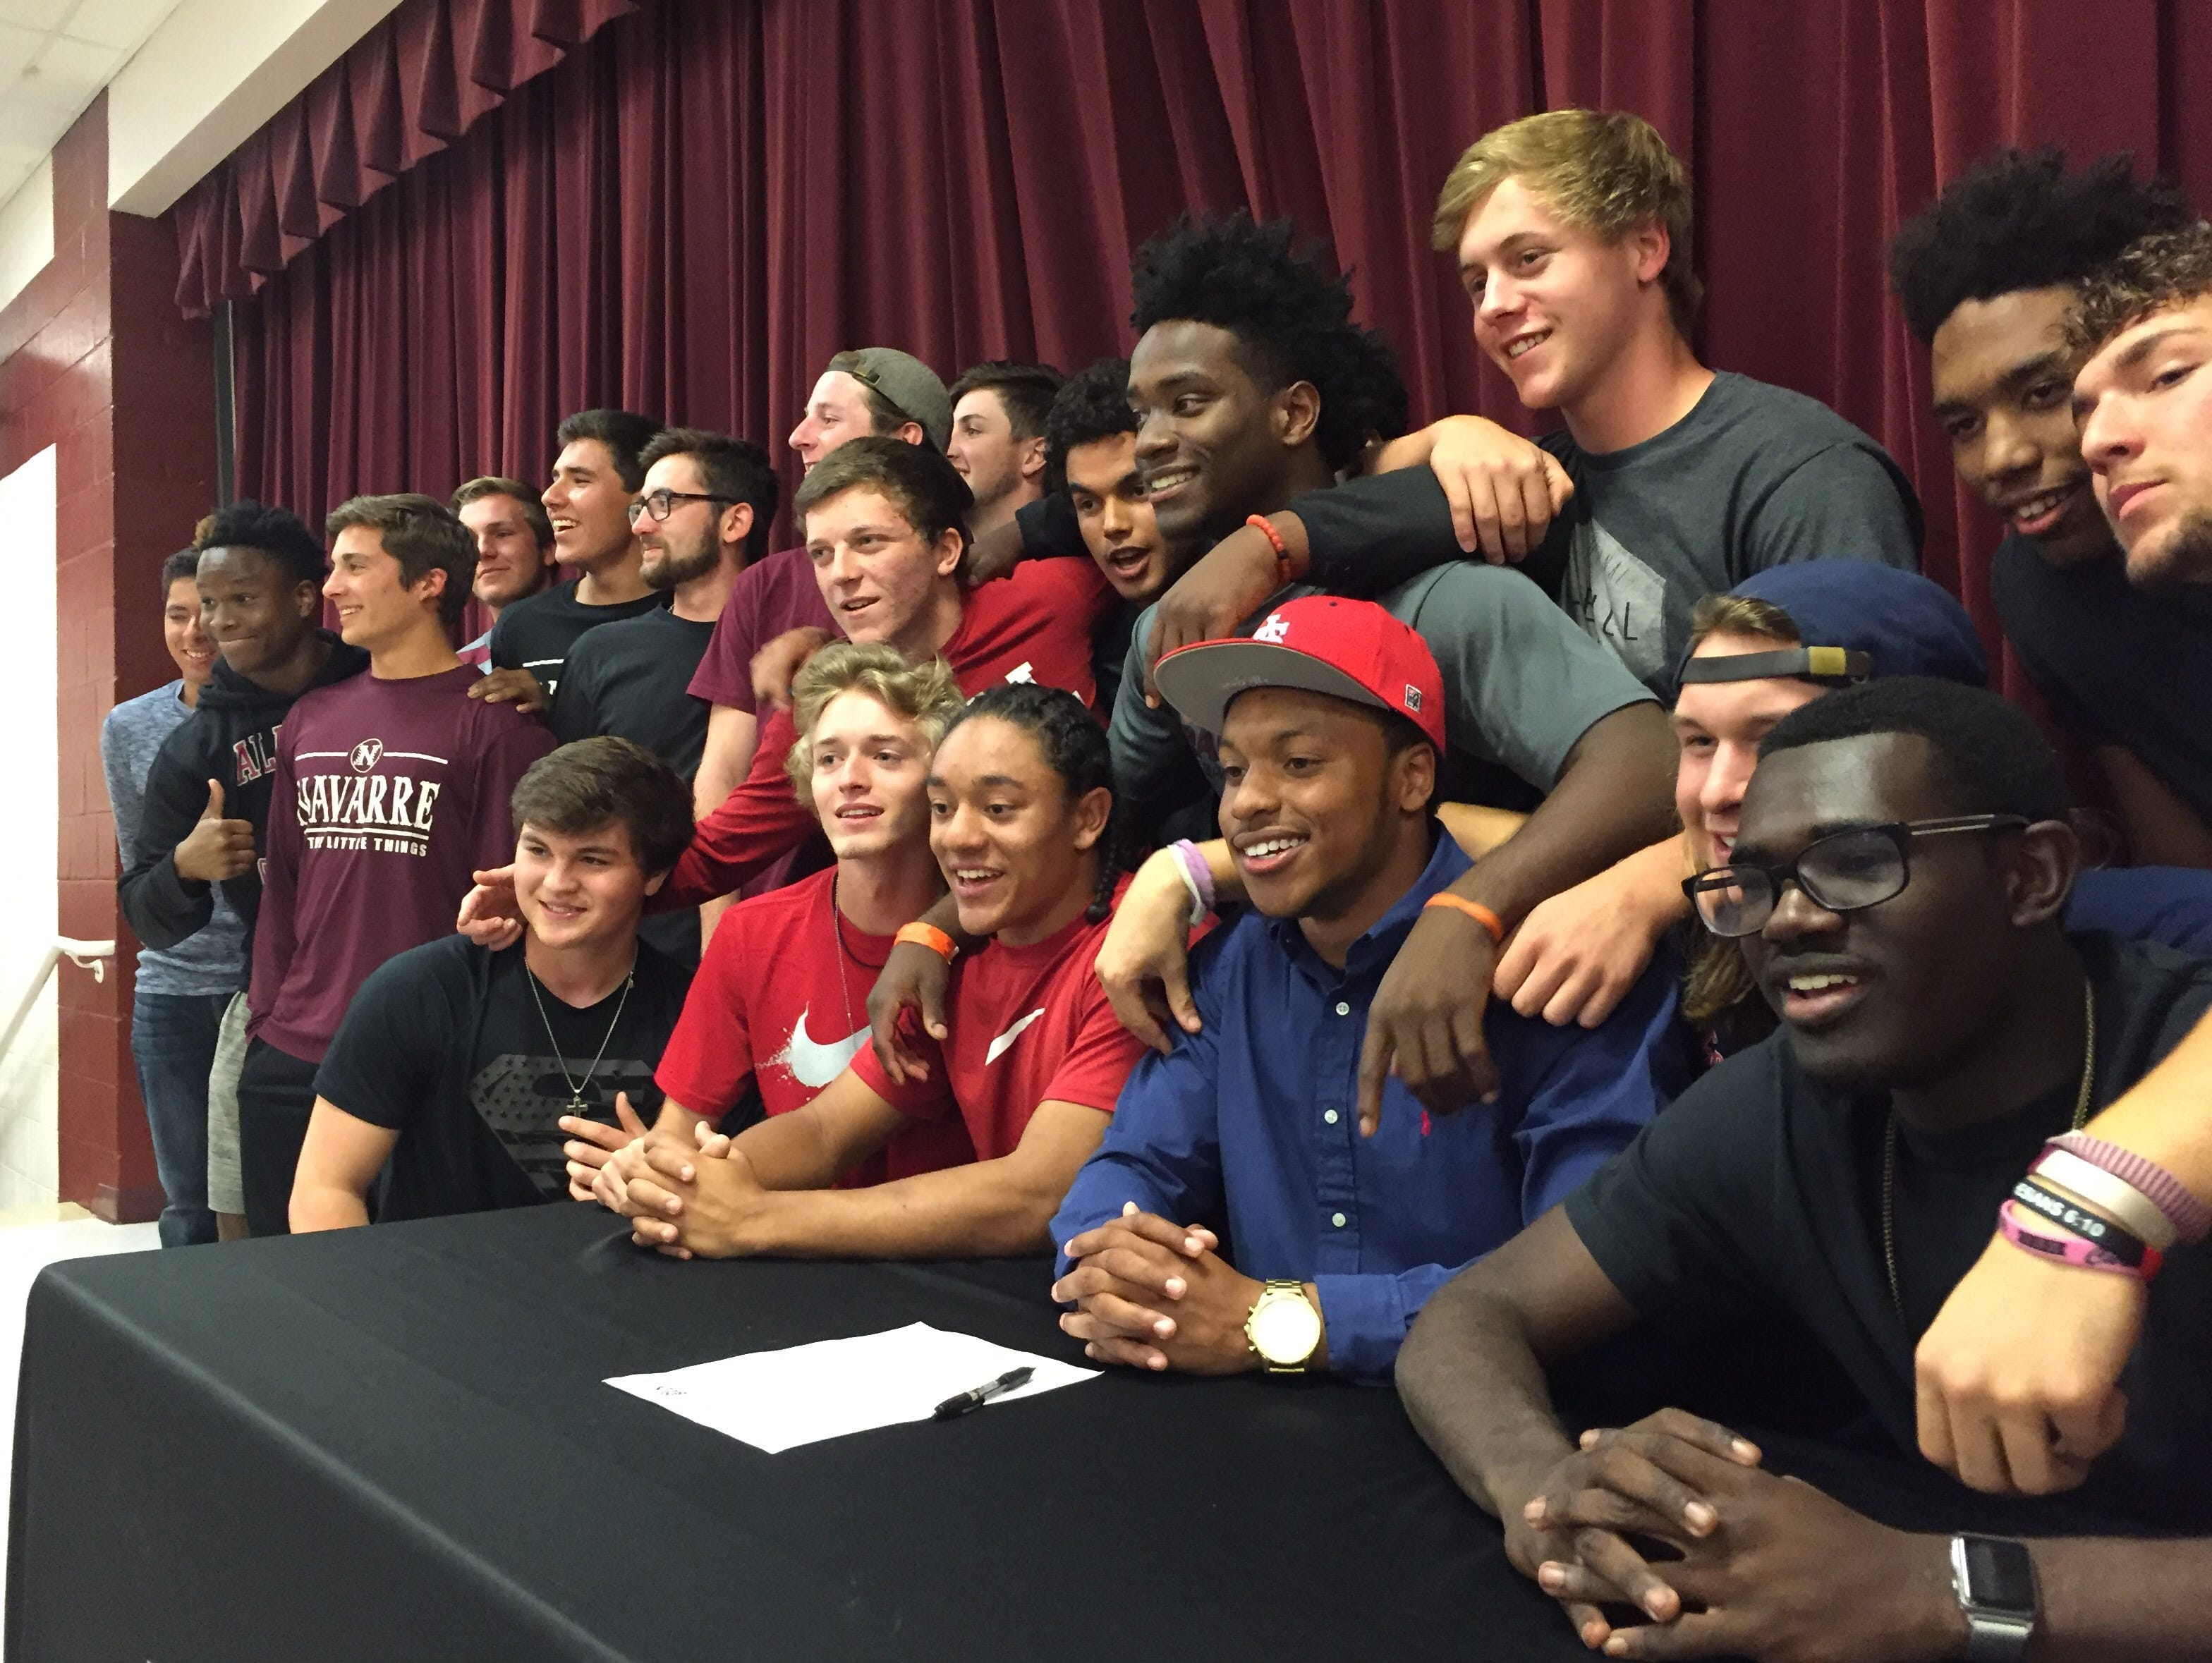 Accompanied by his teammates, Michael Sandle (red South Alabama hat) relishes the moment after signing his letter of intent to play baseball at South Alabama next season.